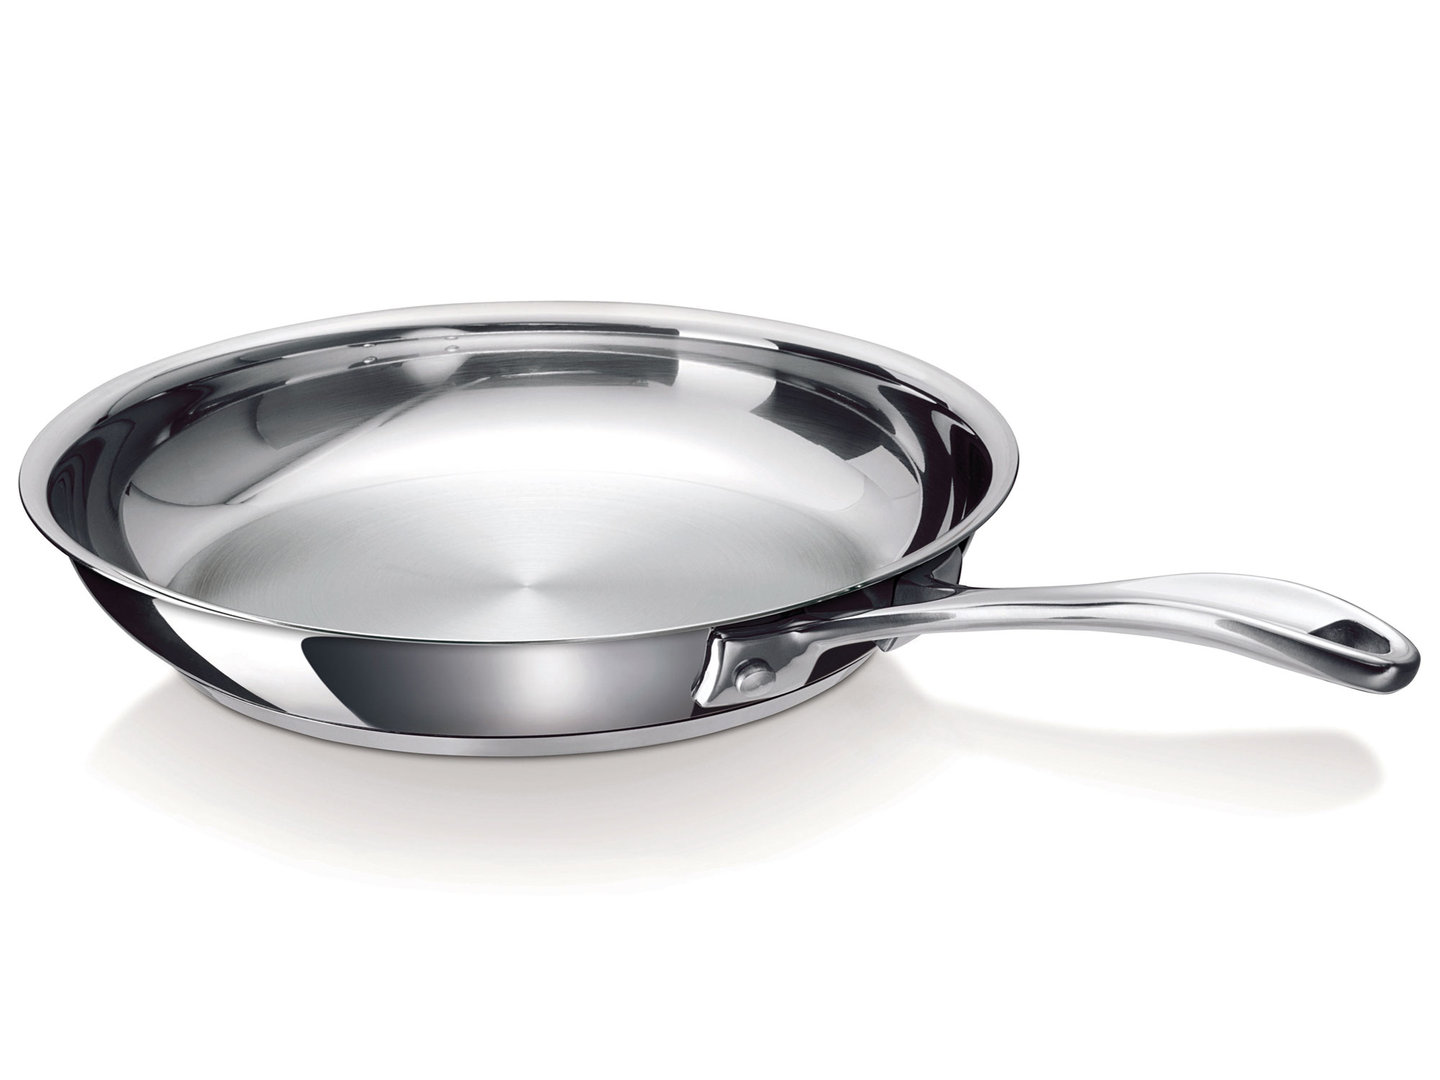 BEKA stainless steel frypan CHEF 28 cm uncoated induction